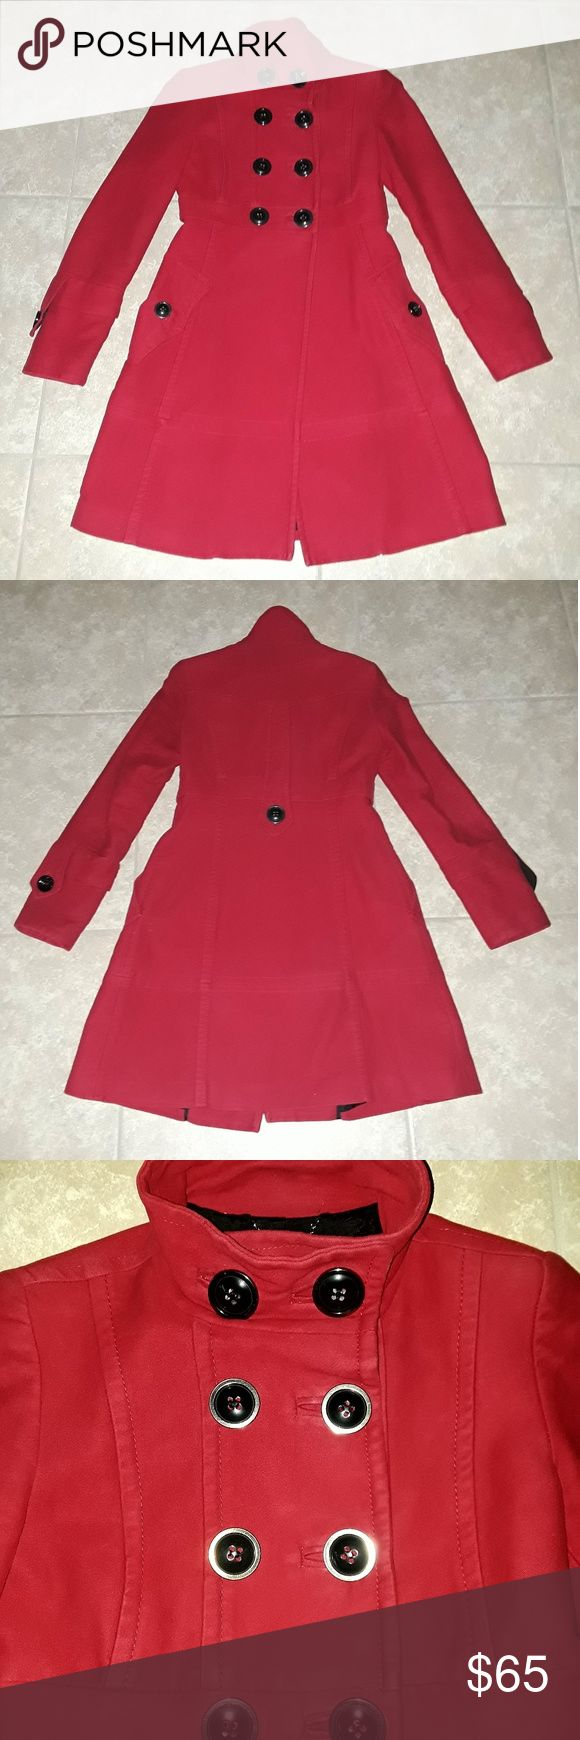 Мango Coat Mango coat. 100% heavy  cotton with  lining. Size S. High waist line. Elegant and bright. Mango Jackets & Coats Pea Coats